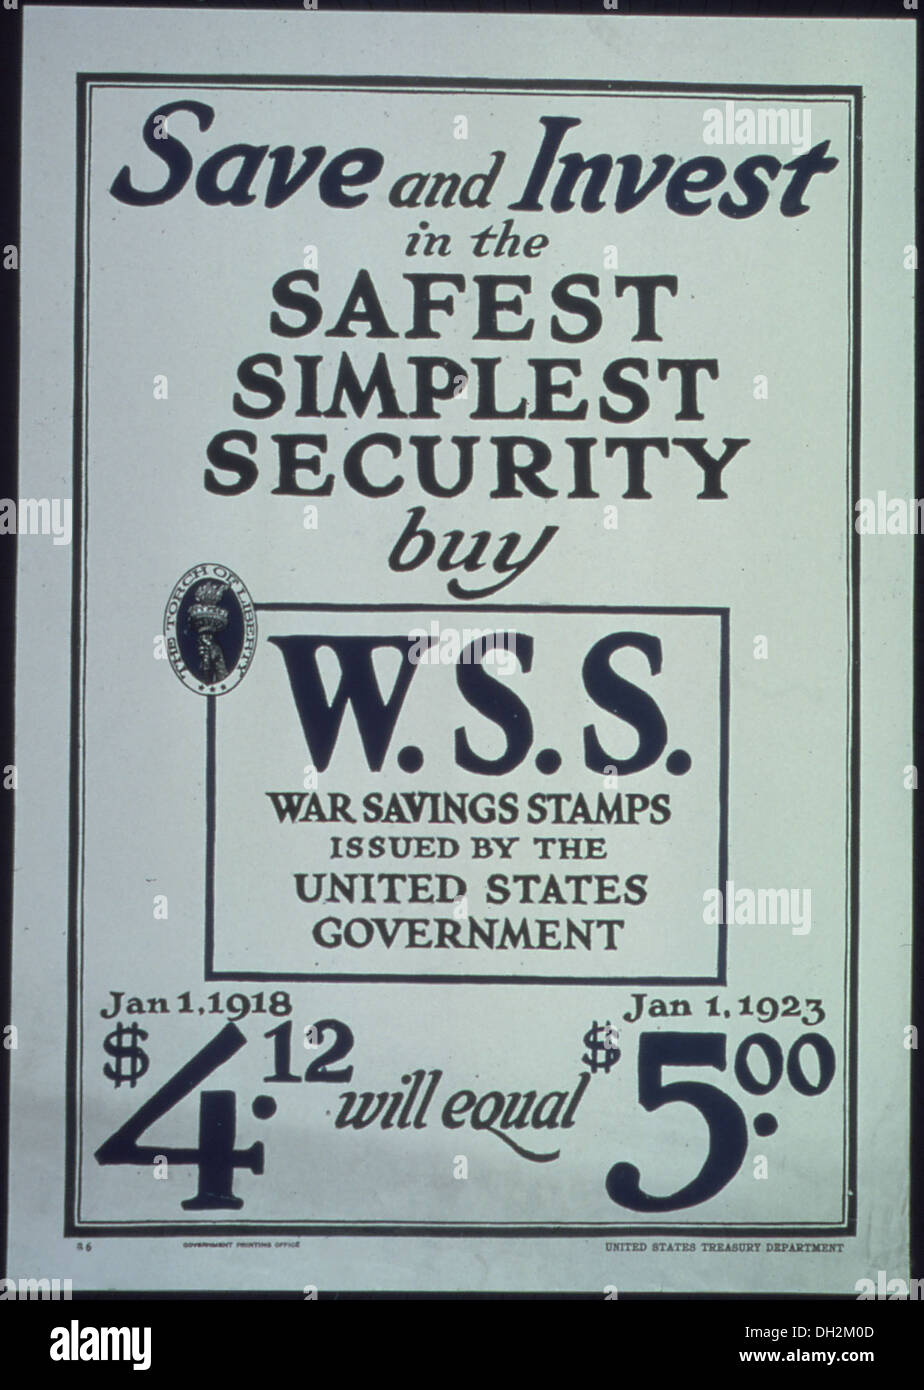 Save and Invest in the Safest, Simplest Security buy W.S.S. war Saving Stamps issued by the United States Government.... 512678 - Stock Image